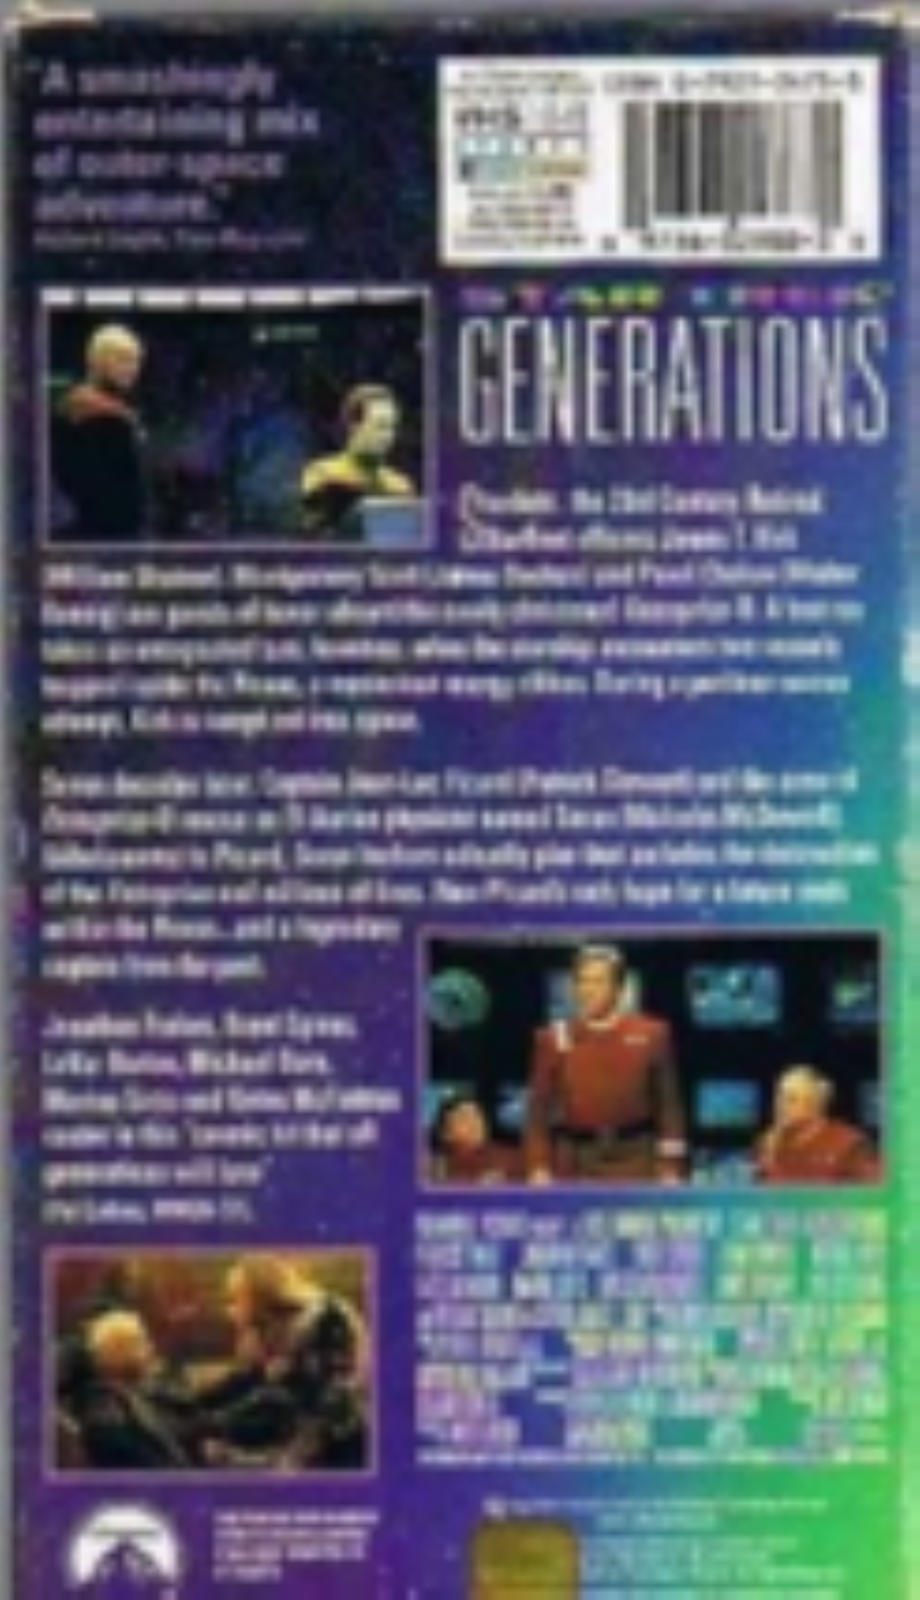 Star Trek: Generations Vhs